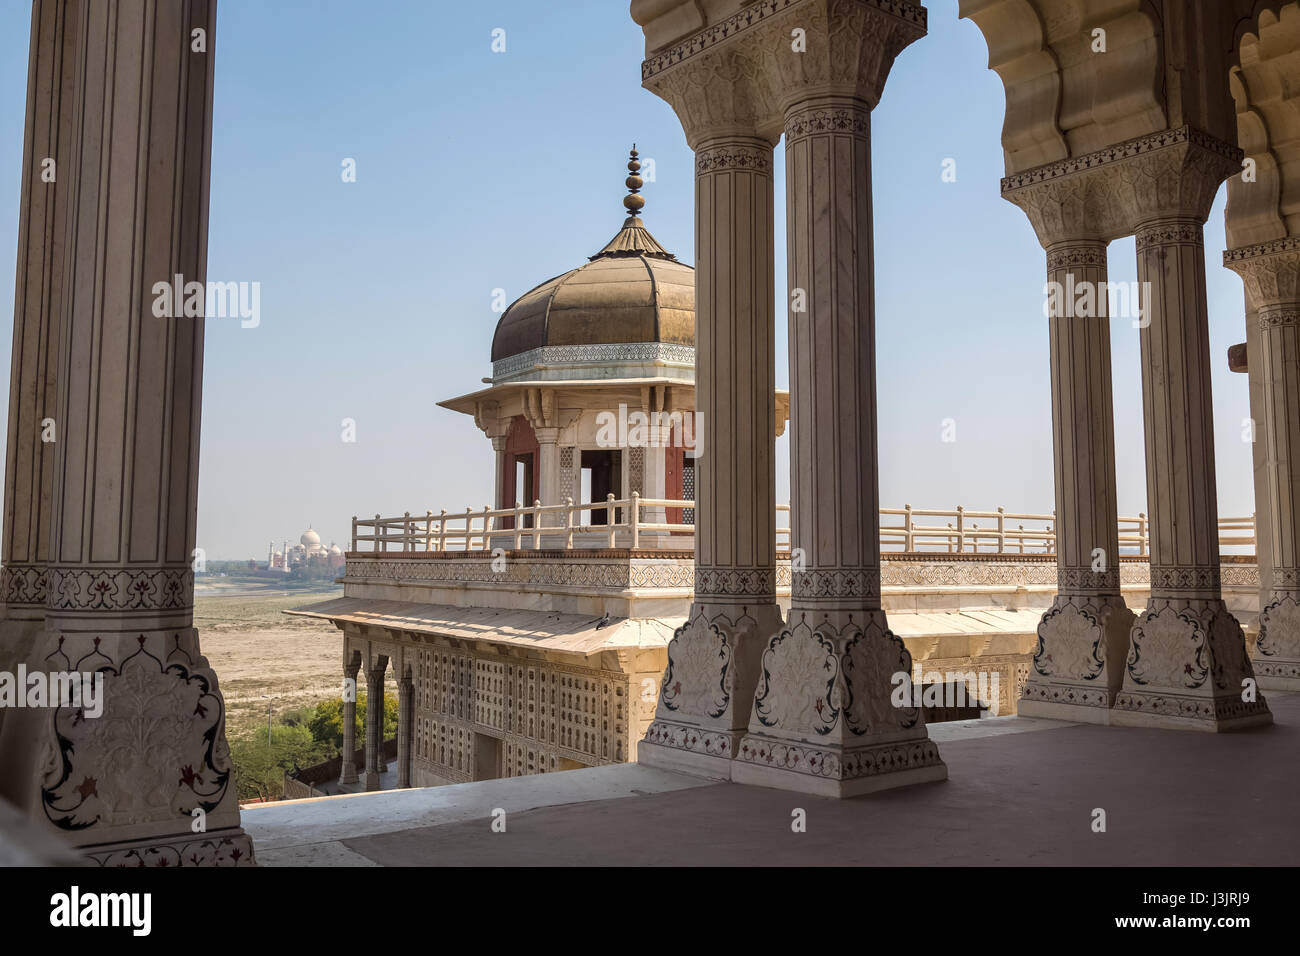 Agra Fort Musamman burj dome with white marble architecture and carvings. Red Fort Agra is a UNESCO World Heritage - Stock Image